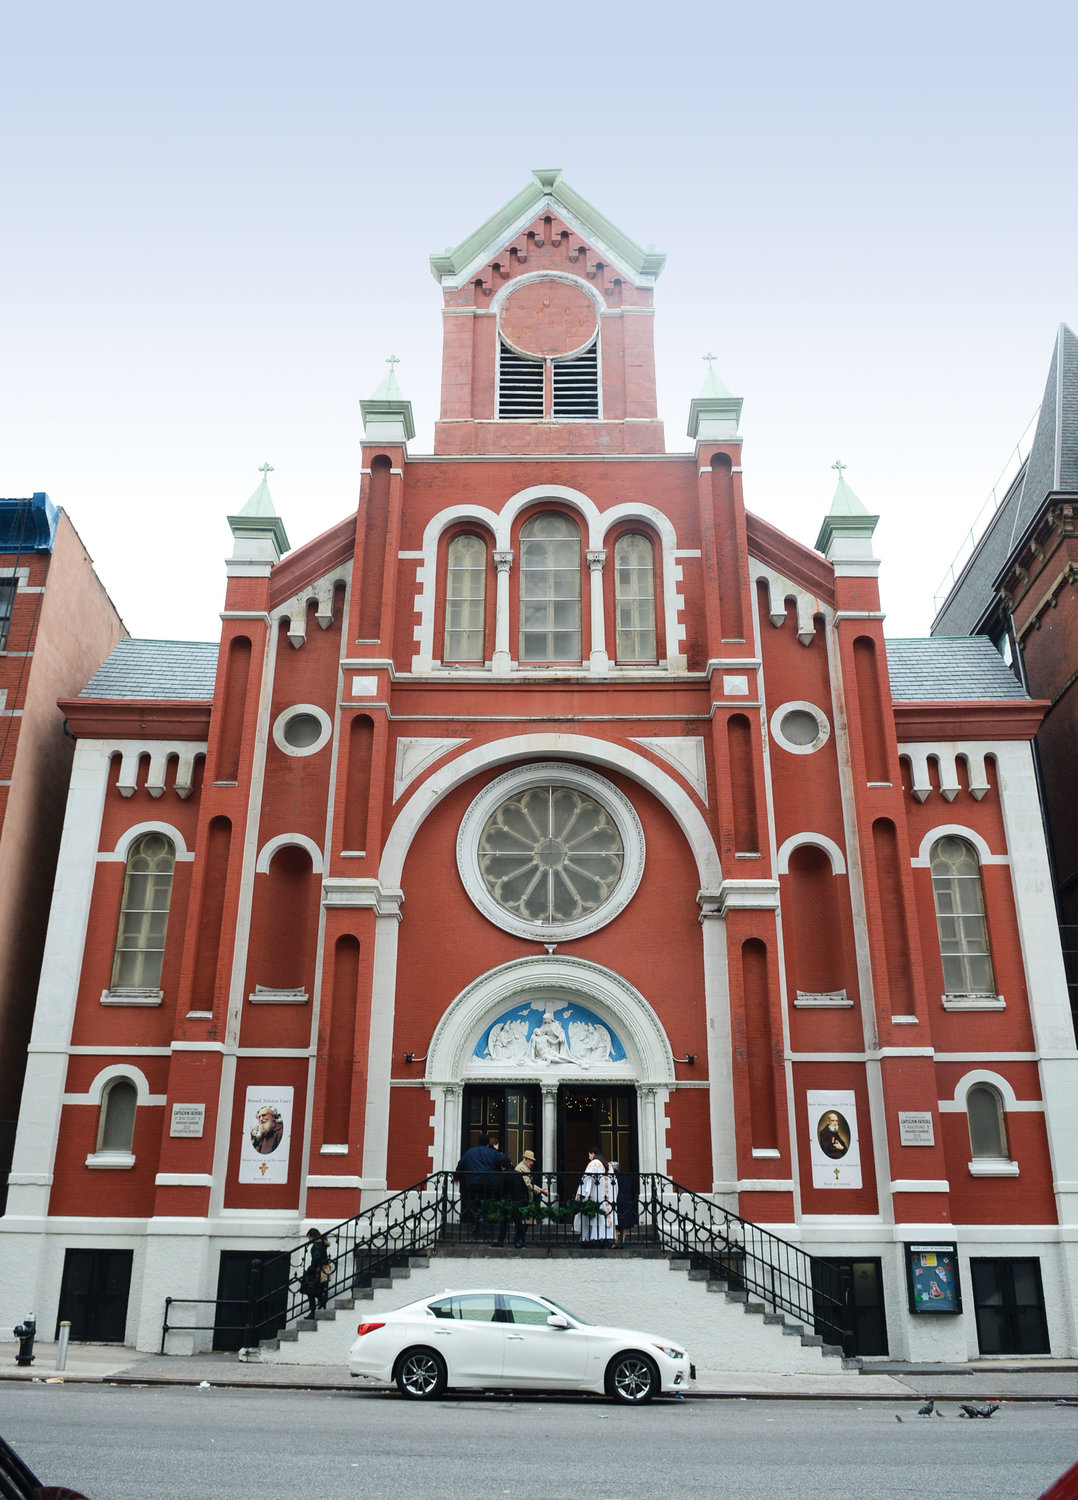 Our Lady of Sorrows Church in Manhattan was dedicated in 1868 and recently completed its 150th anniversary celebration at a Mass offered by Boston Cardinal Sean O'Malley, O.F.M. Cap.